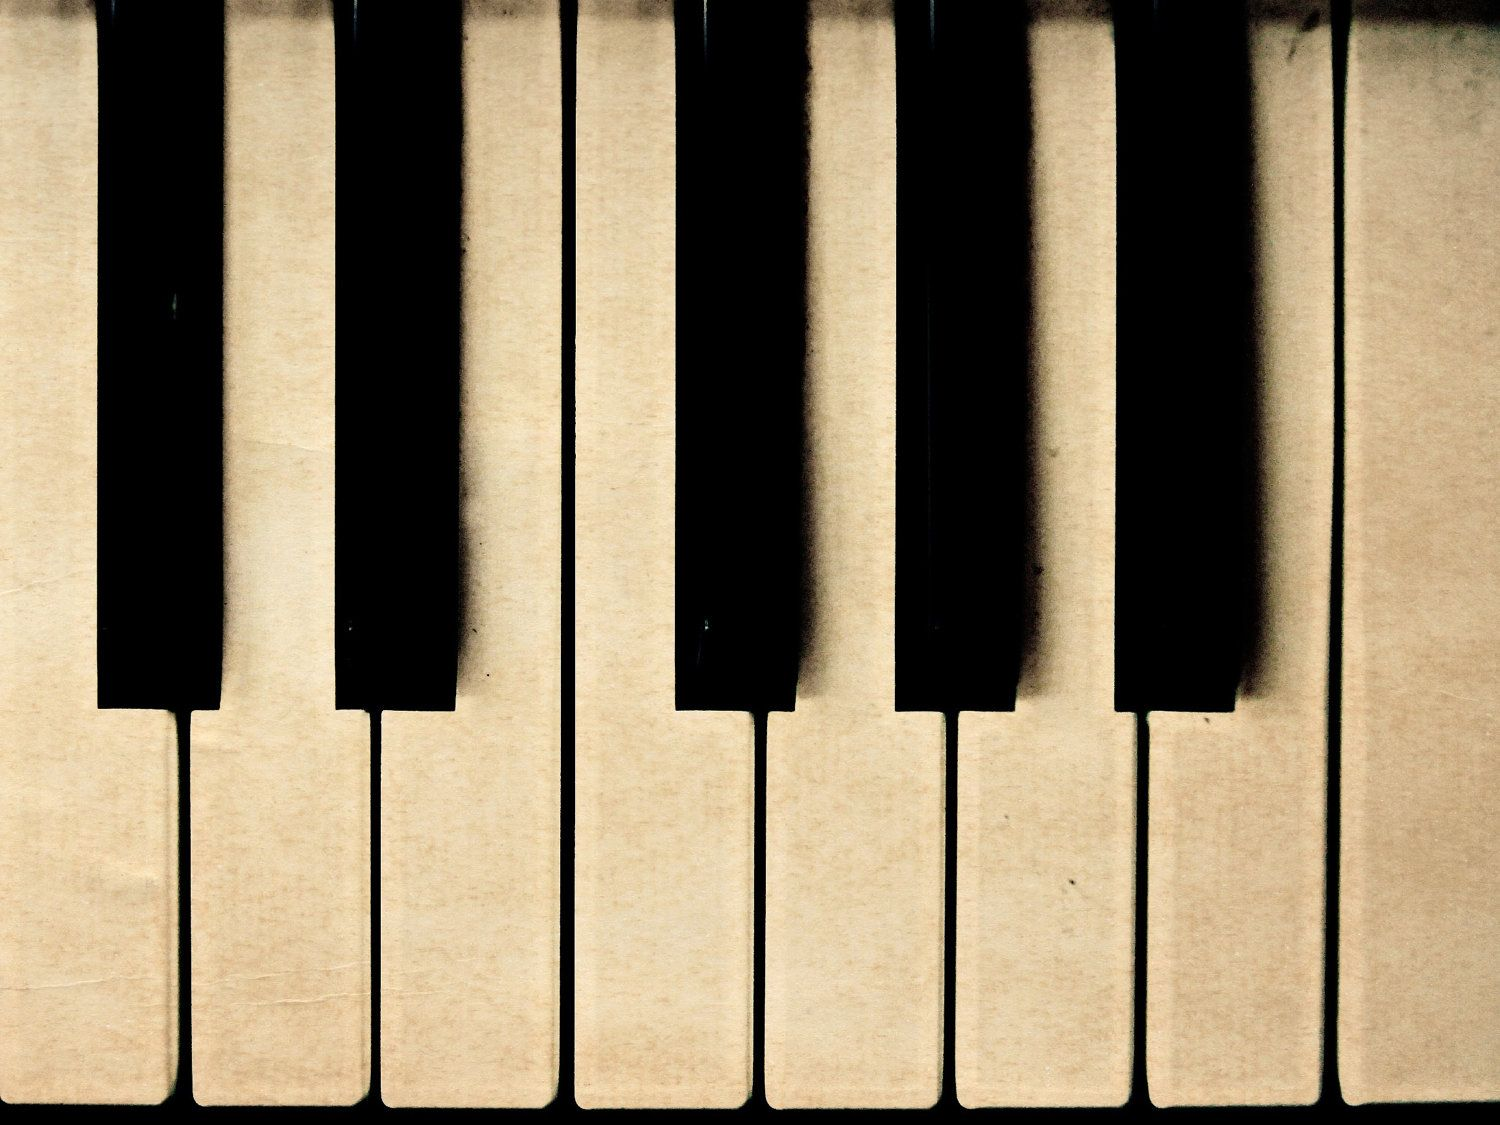 Piano Keyboard Inspiration | Music | Pinterest | Pianos, Music ...